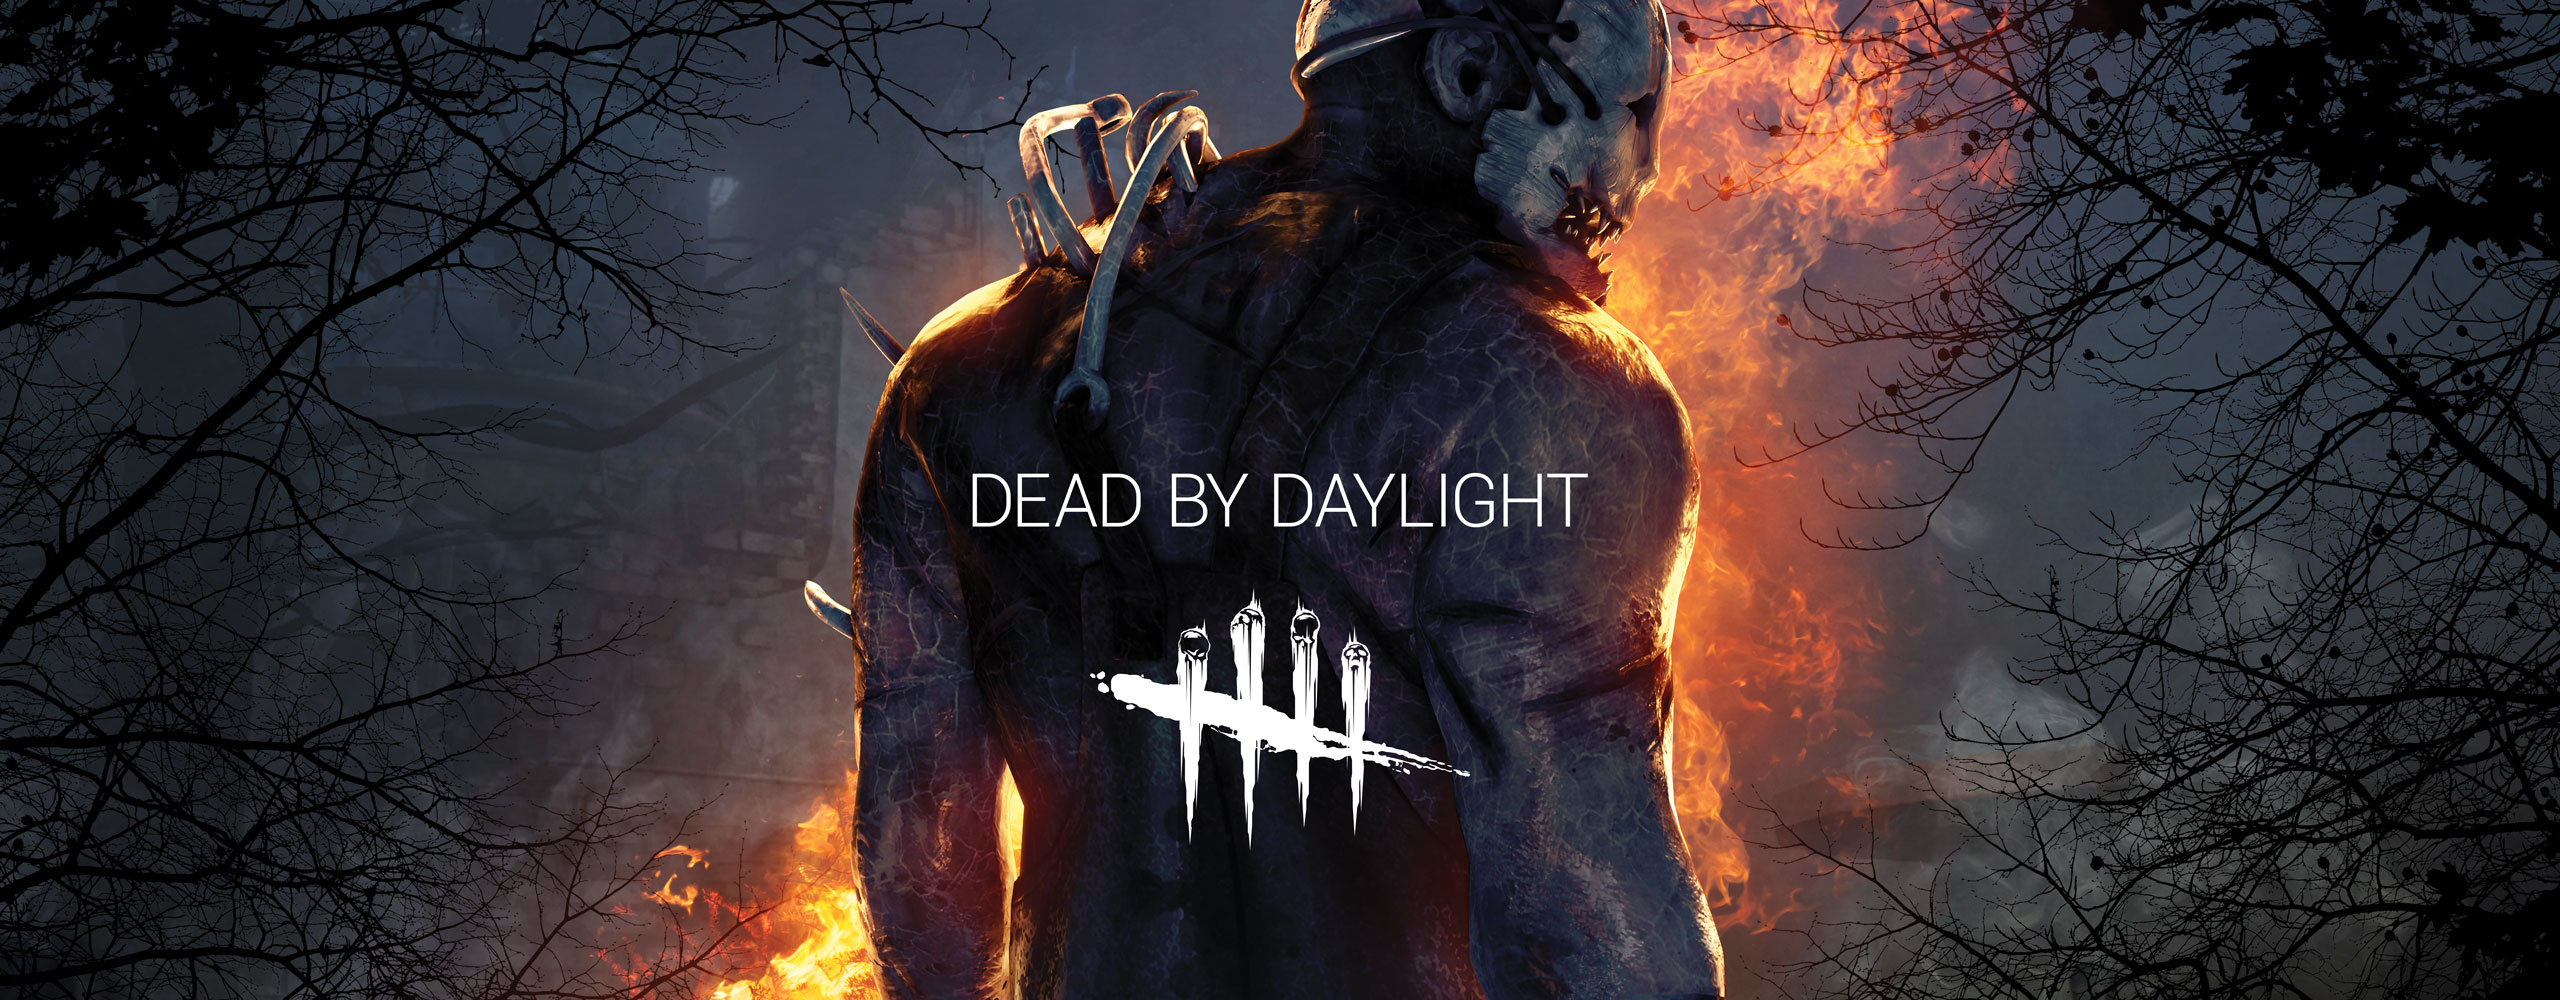 Dead by Daylight (Россия)